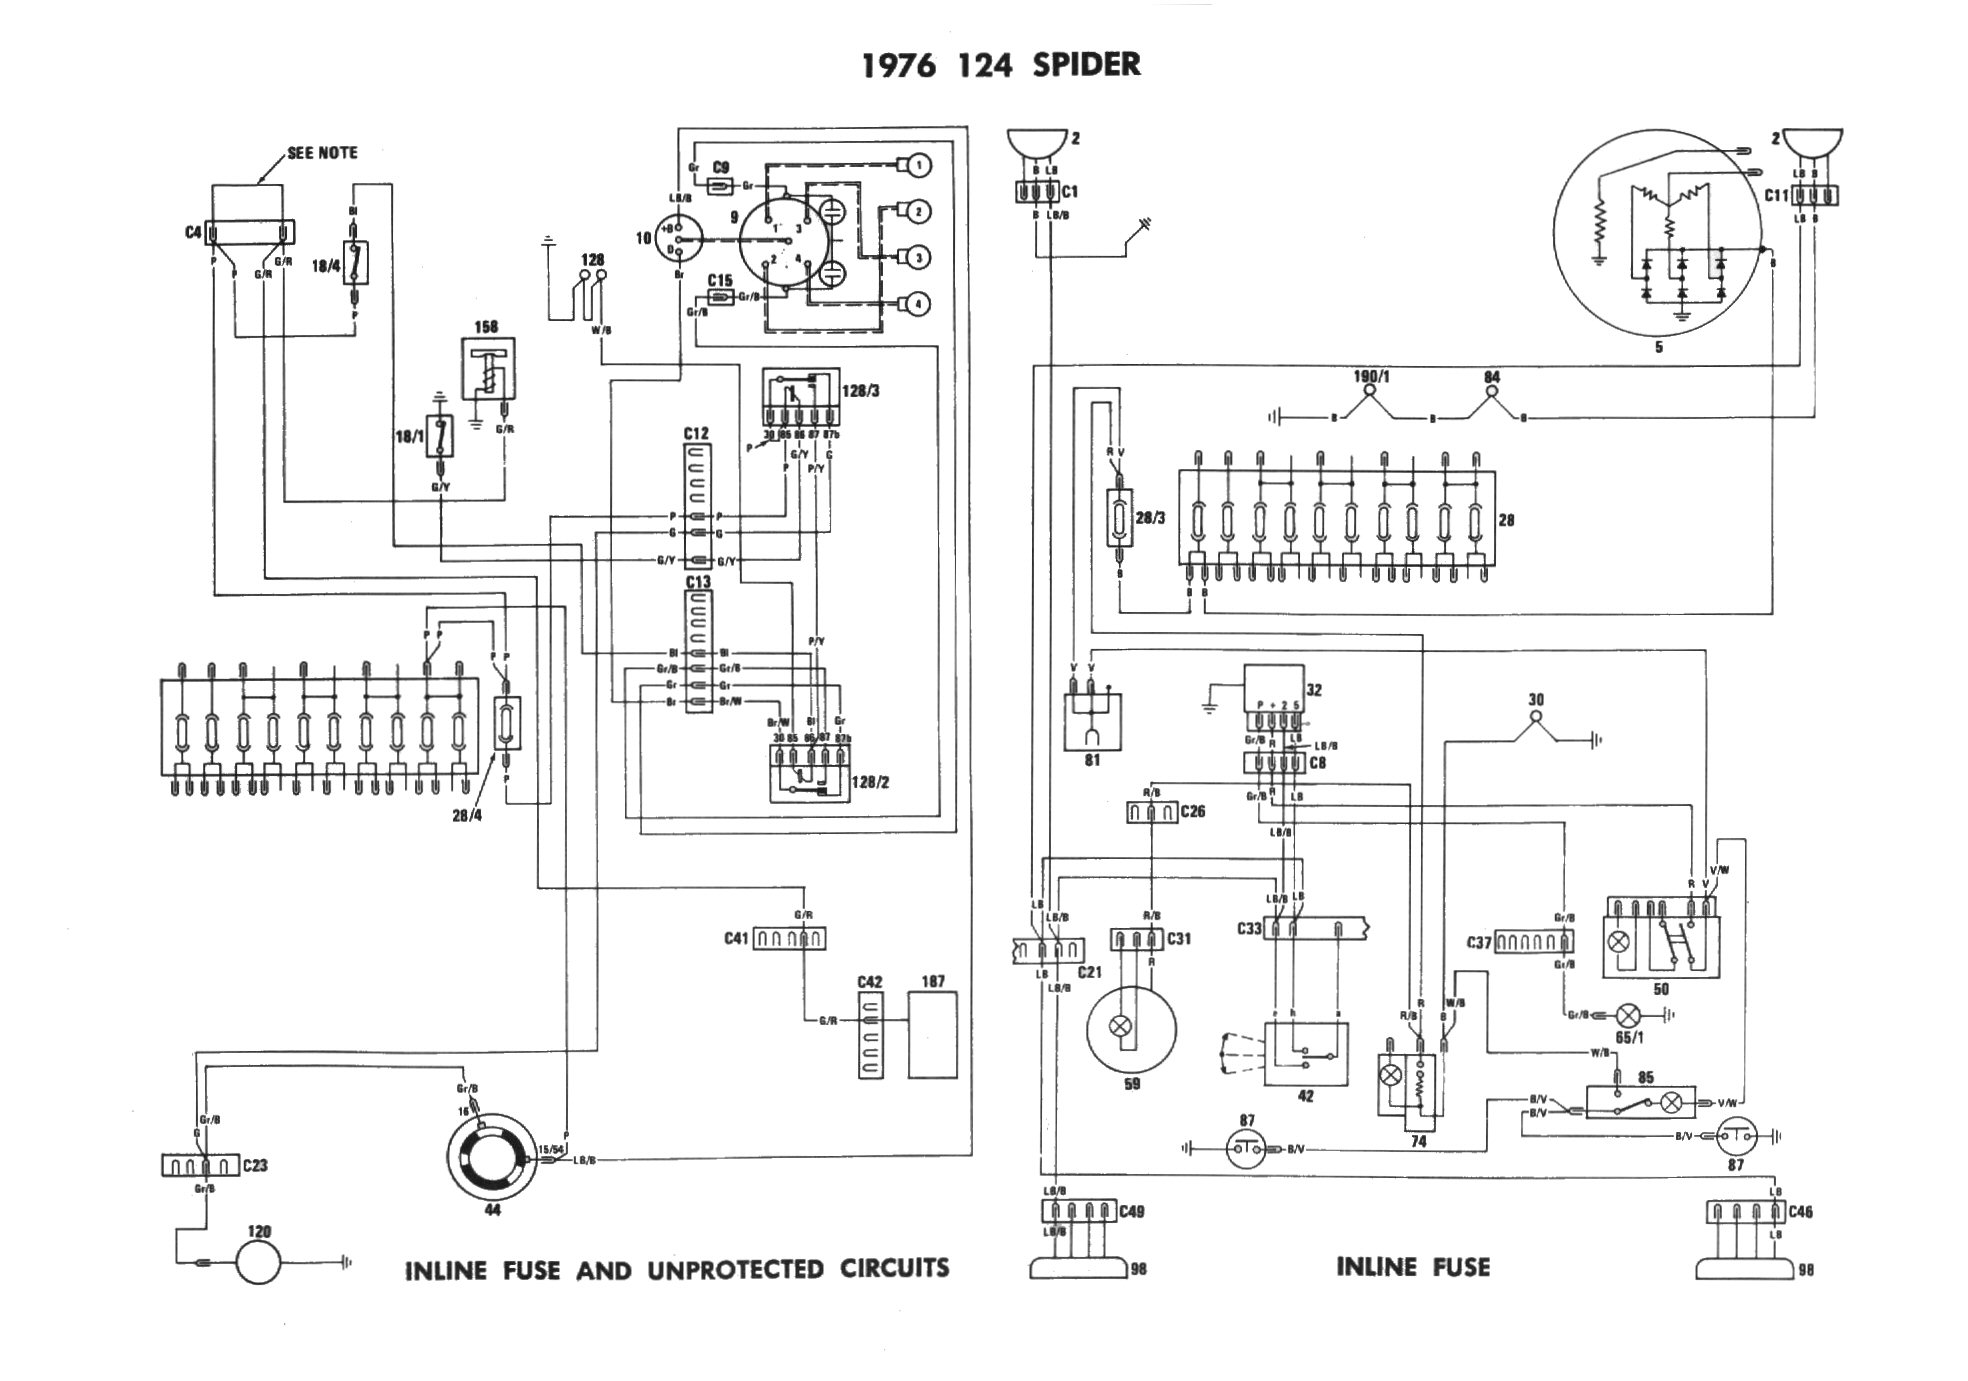 7 1976 corvette wiring diagram efcaviation com 1979 corvette wiring diagram at suagrazia.org